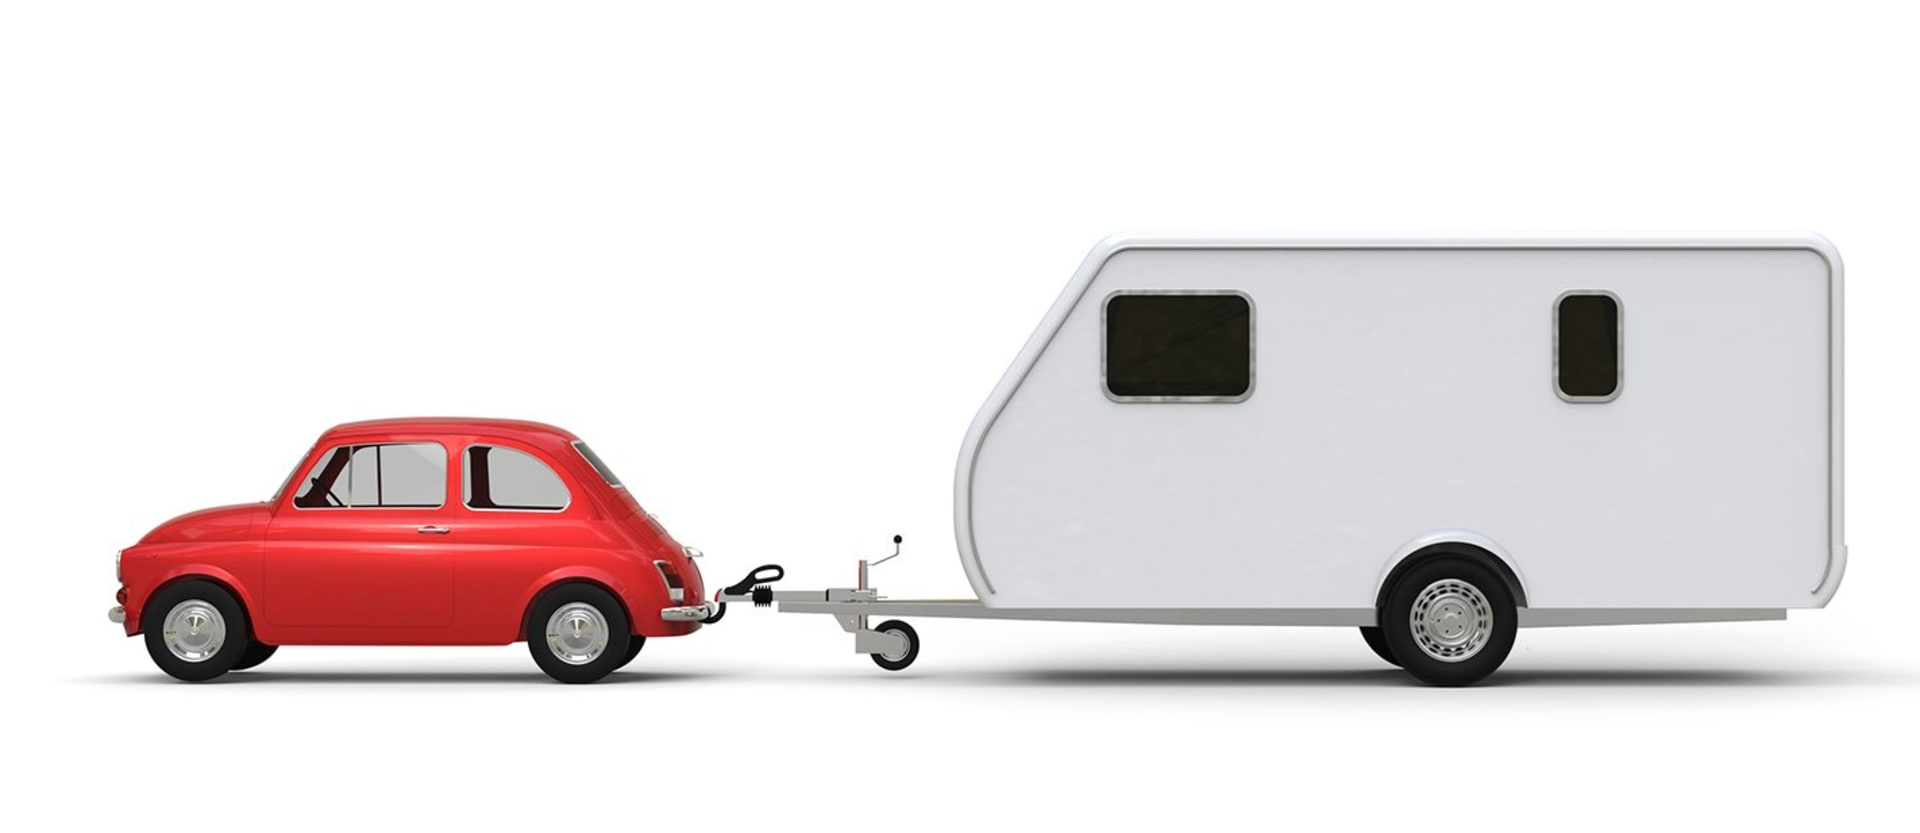 Towing weights explained